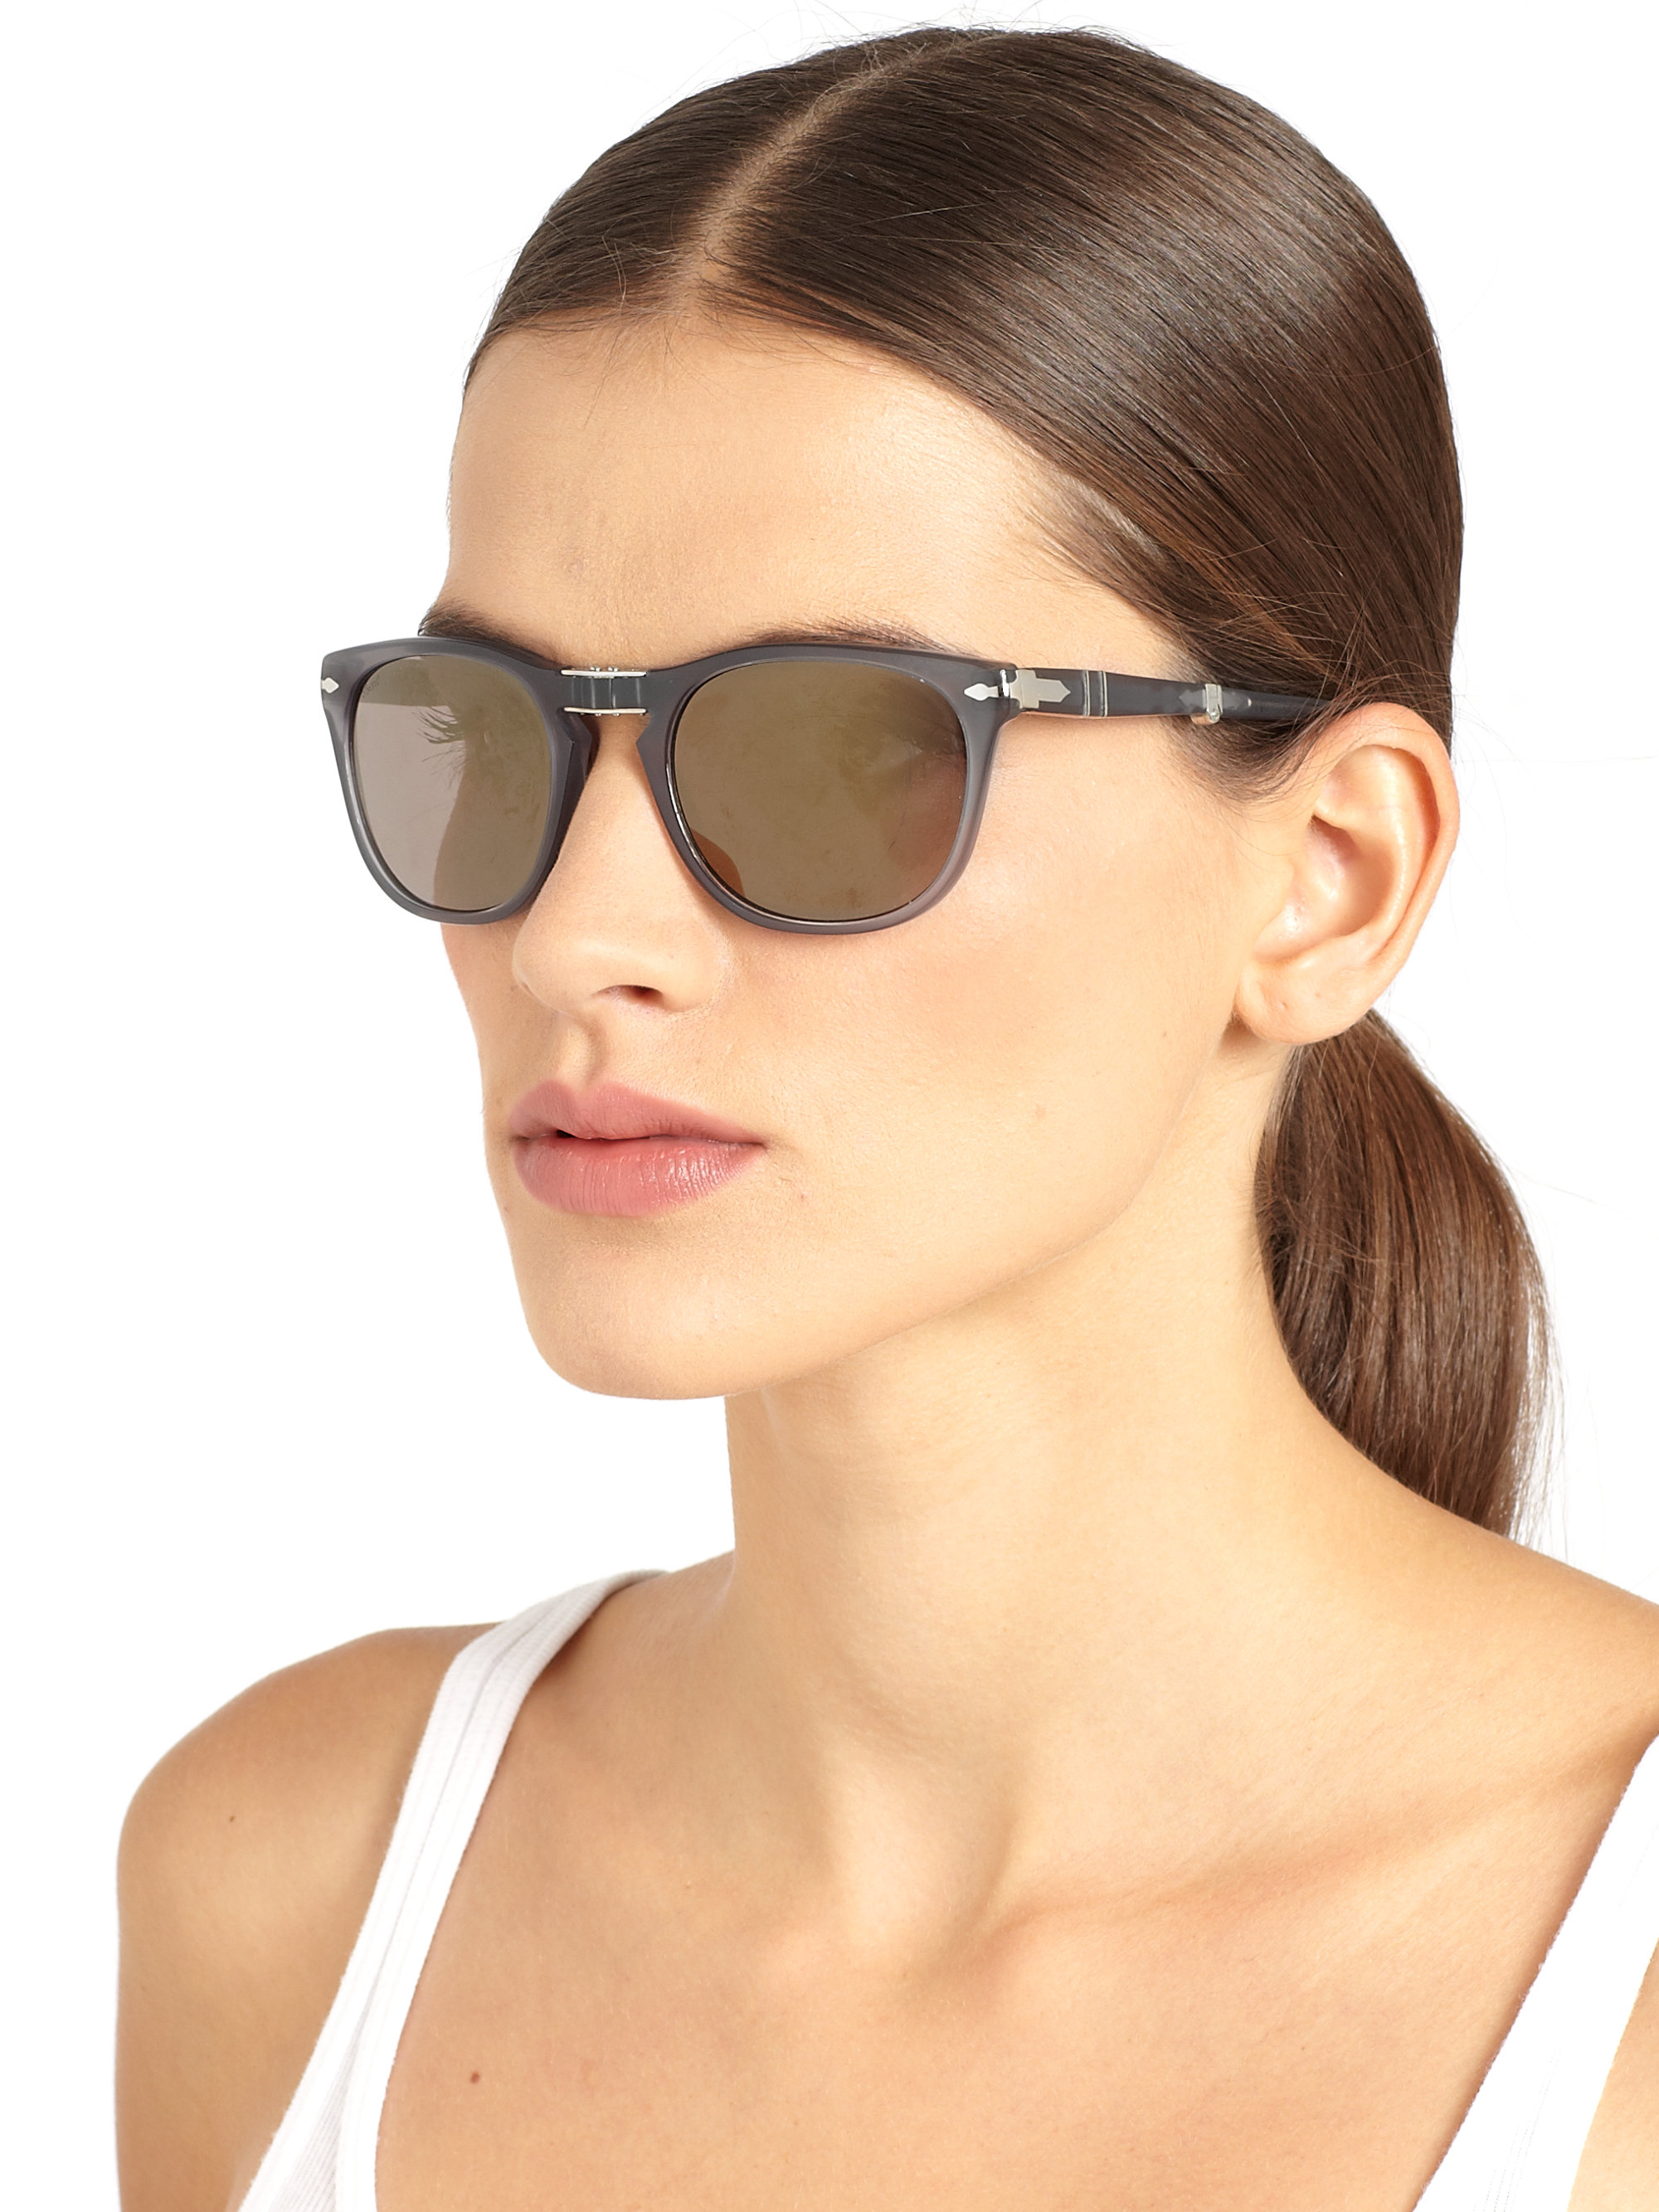 c7a9b1d1c1 Persol Mirrored Sunglasses For Women - Bitterroot Public Library